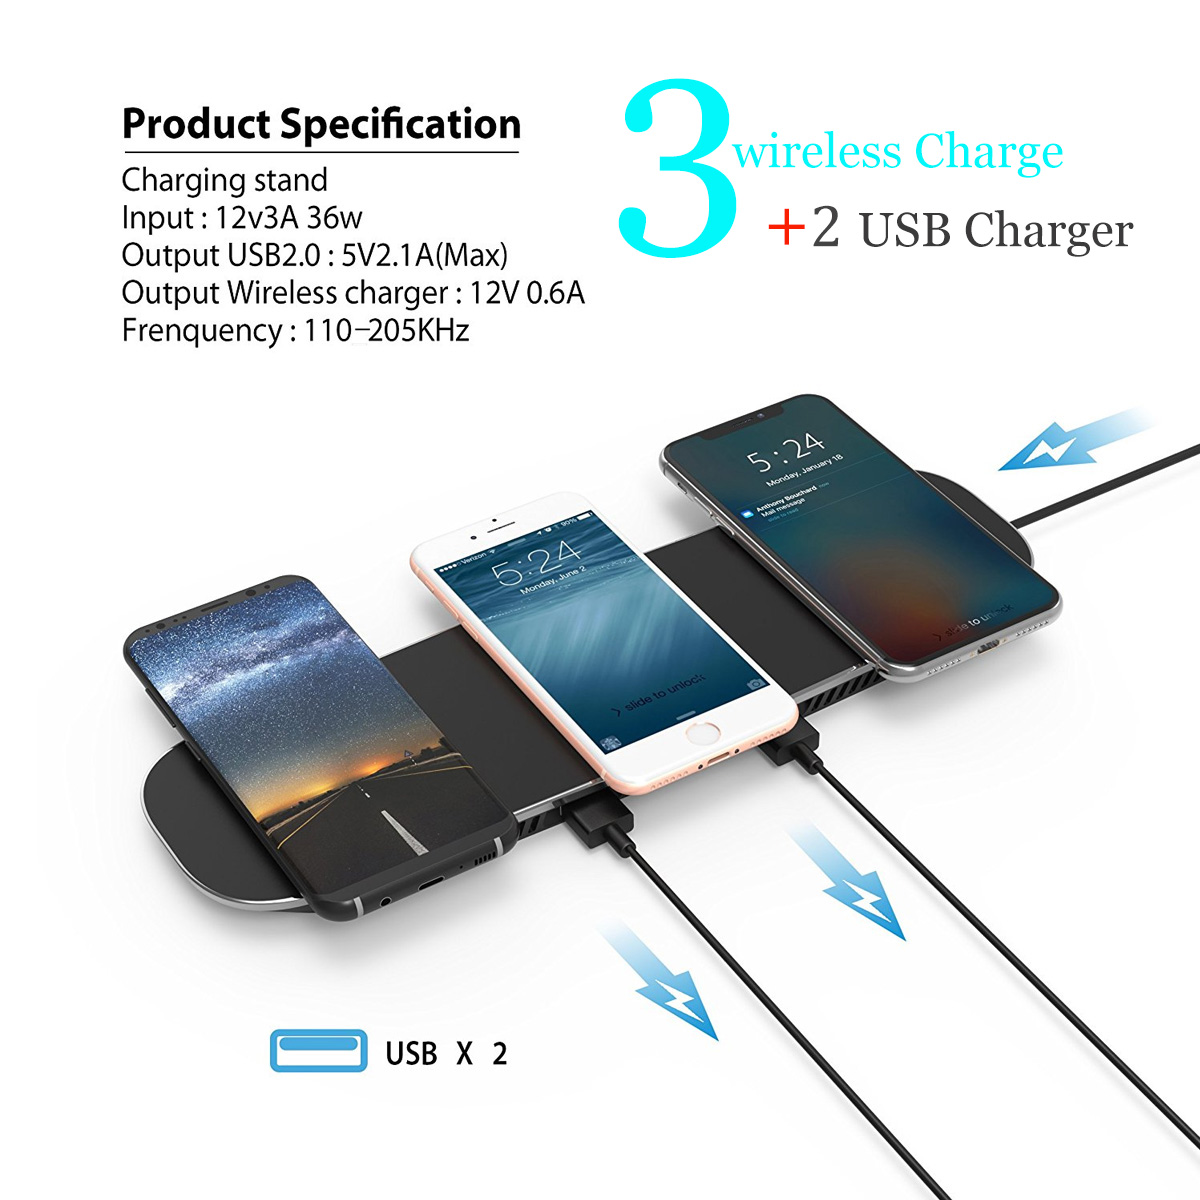 Qi Triple Wireless Charger Station,3 Devices Multi Wireless Charger Pad,Desktop Charging qi charger Station for iPhon e X, iPhon e 8/8Plus, Galaxy S8+ S7/S7 Edge Note 8/5, Nexus 5/6/7